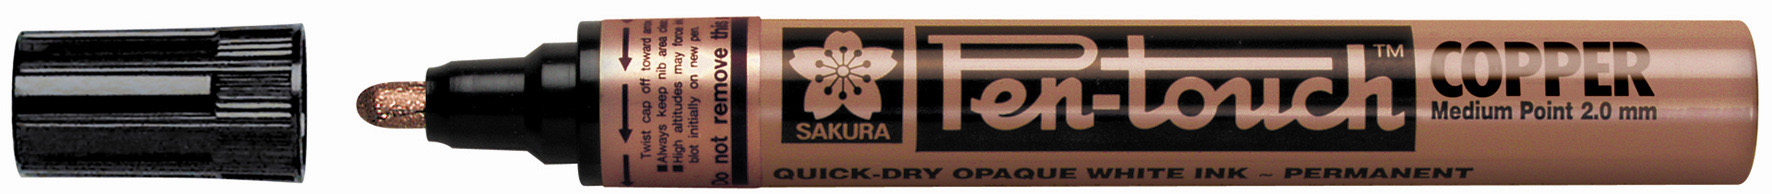 Sakura Pen Touch Permanent Marker - Medium Tip - Copper